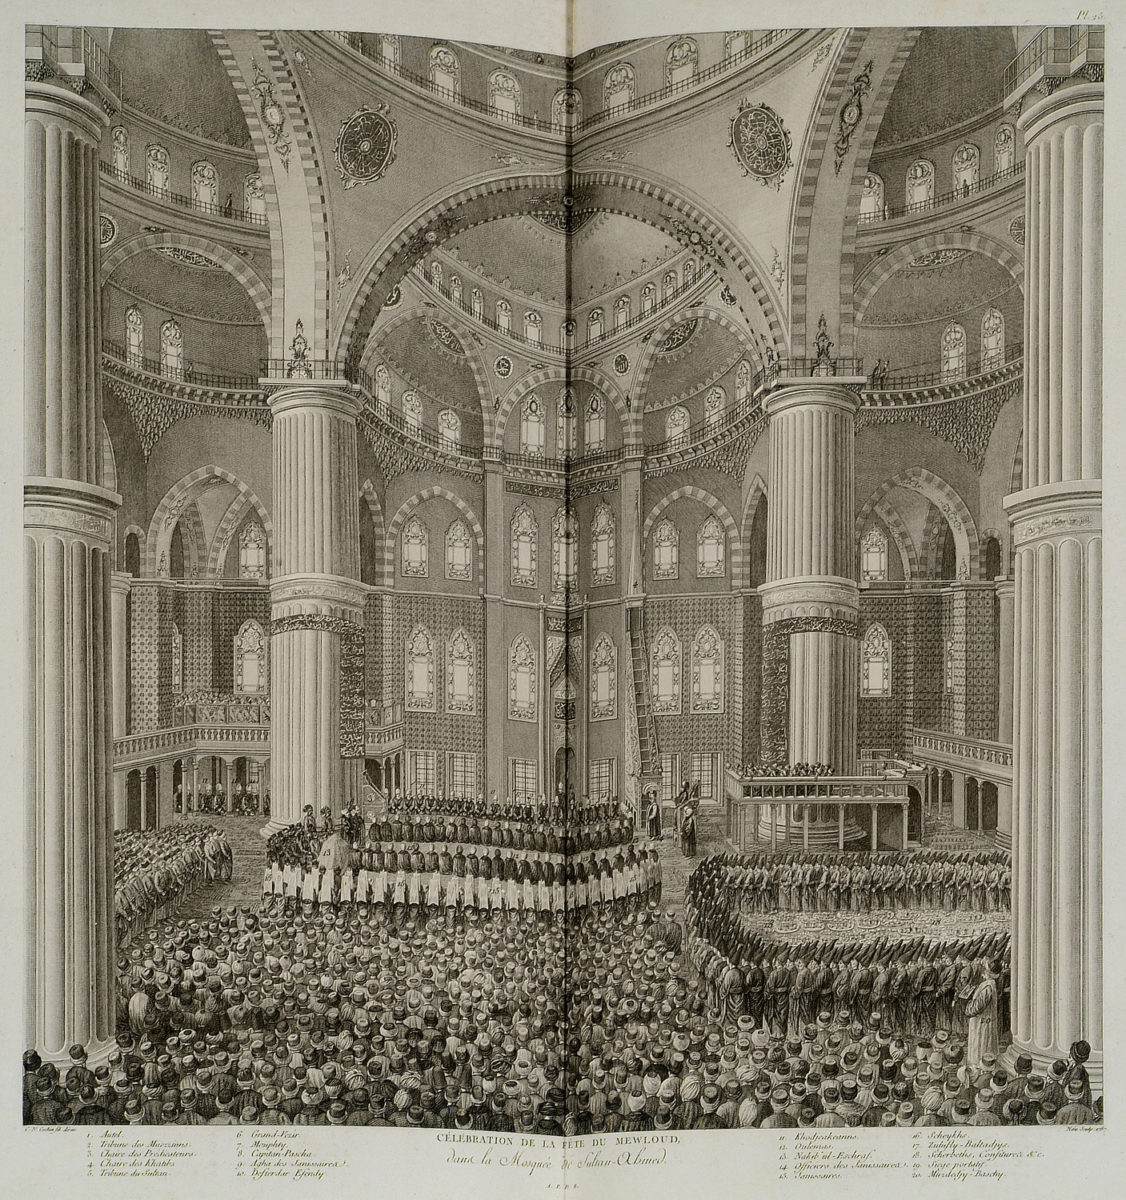 the celebration of mawlid the birthday of the prophet on being in this rendering of a scene from 1787 muslims take part in an official prayer to celebrate the birth of prophet muhammad in the presence of the sultan and